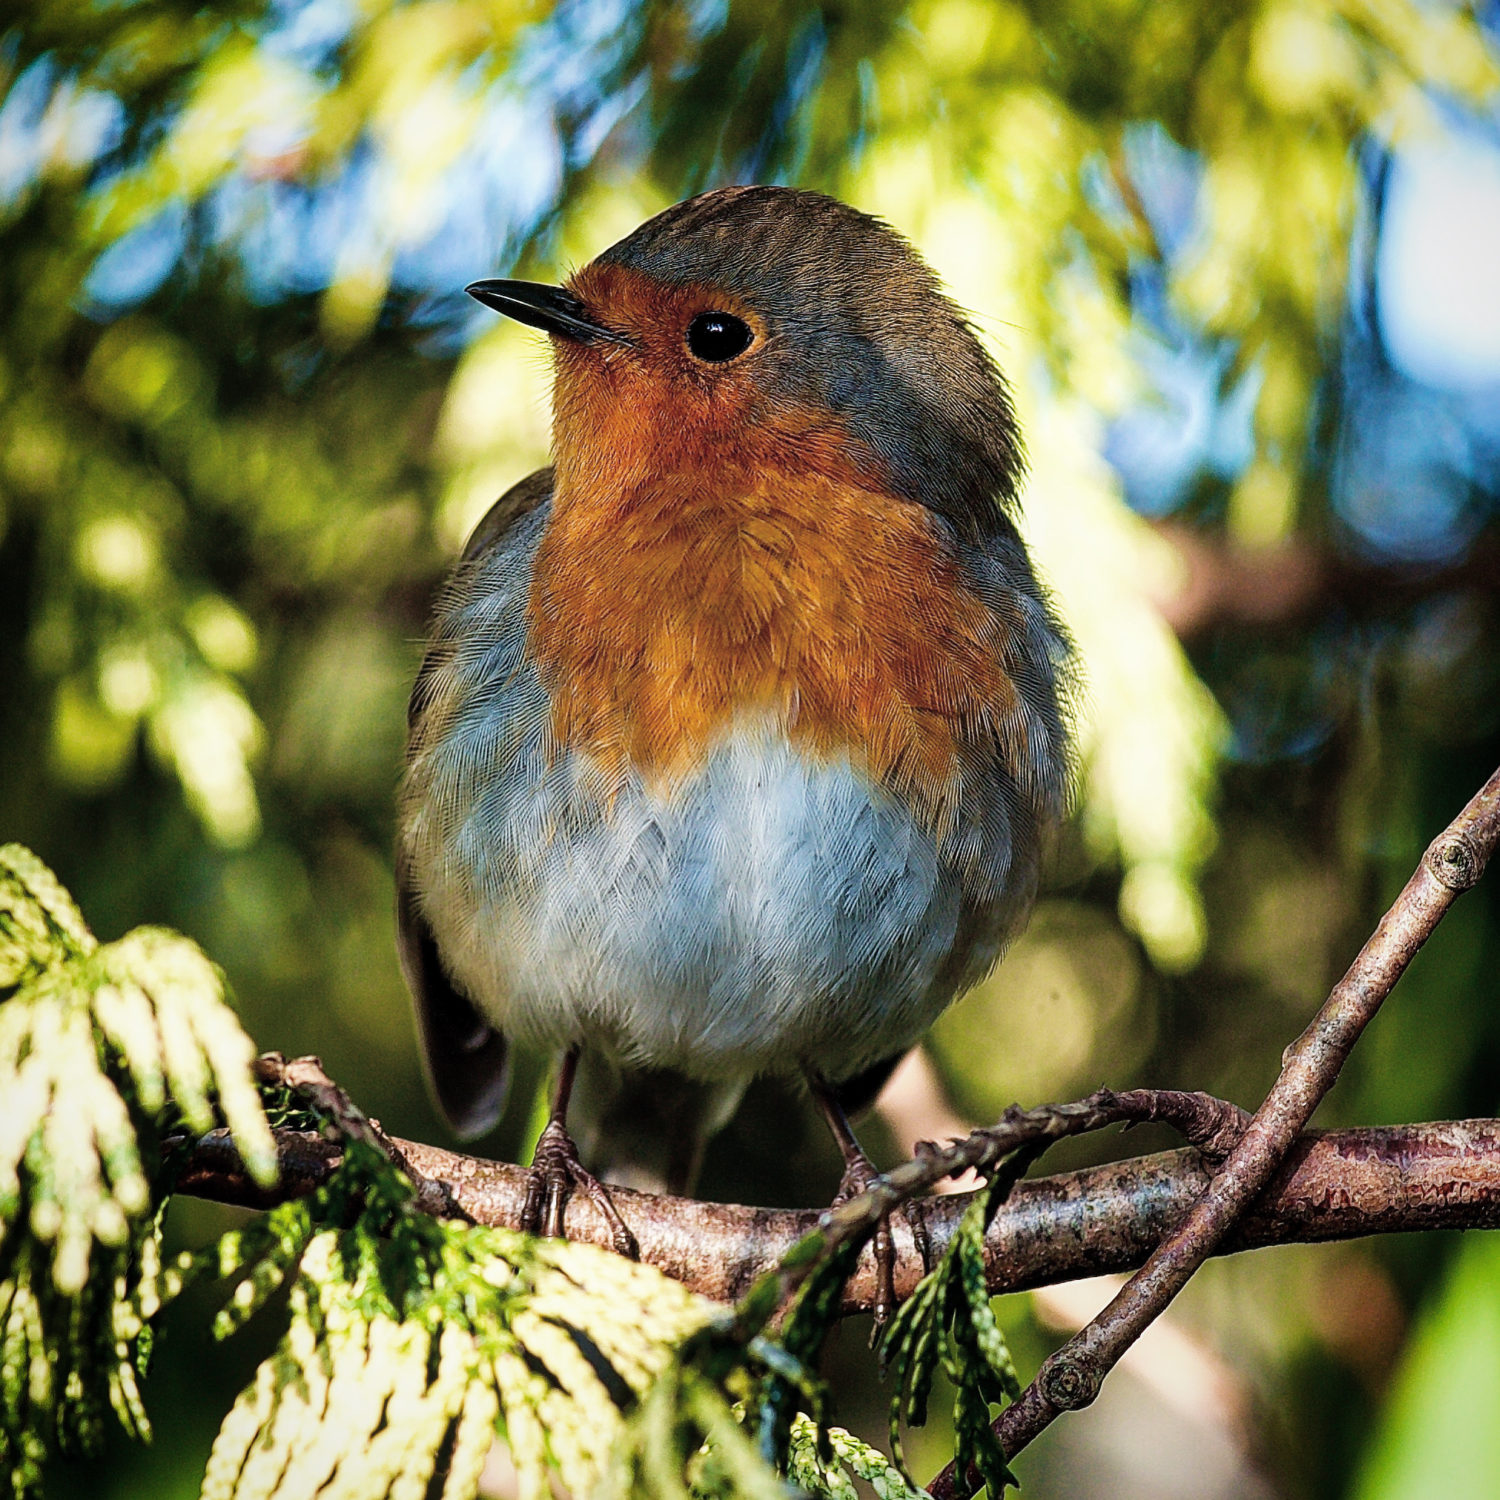 Photograph of a Robin perched on a tree branch looking off to the left.